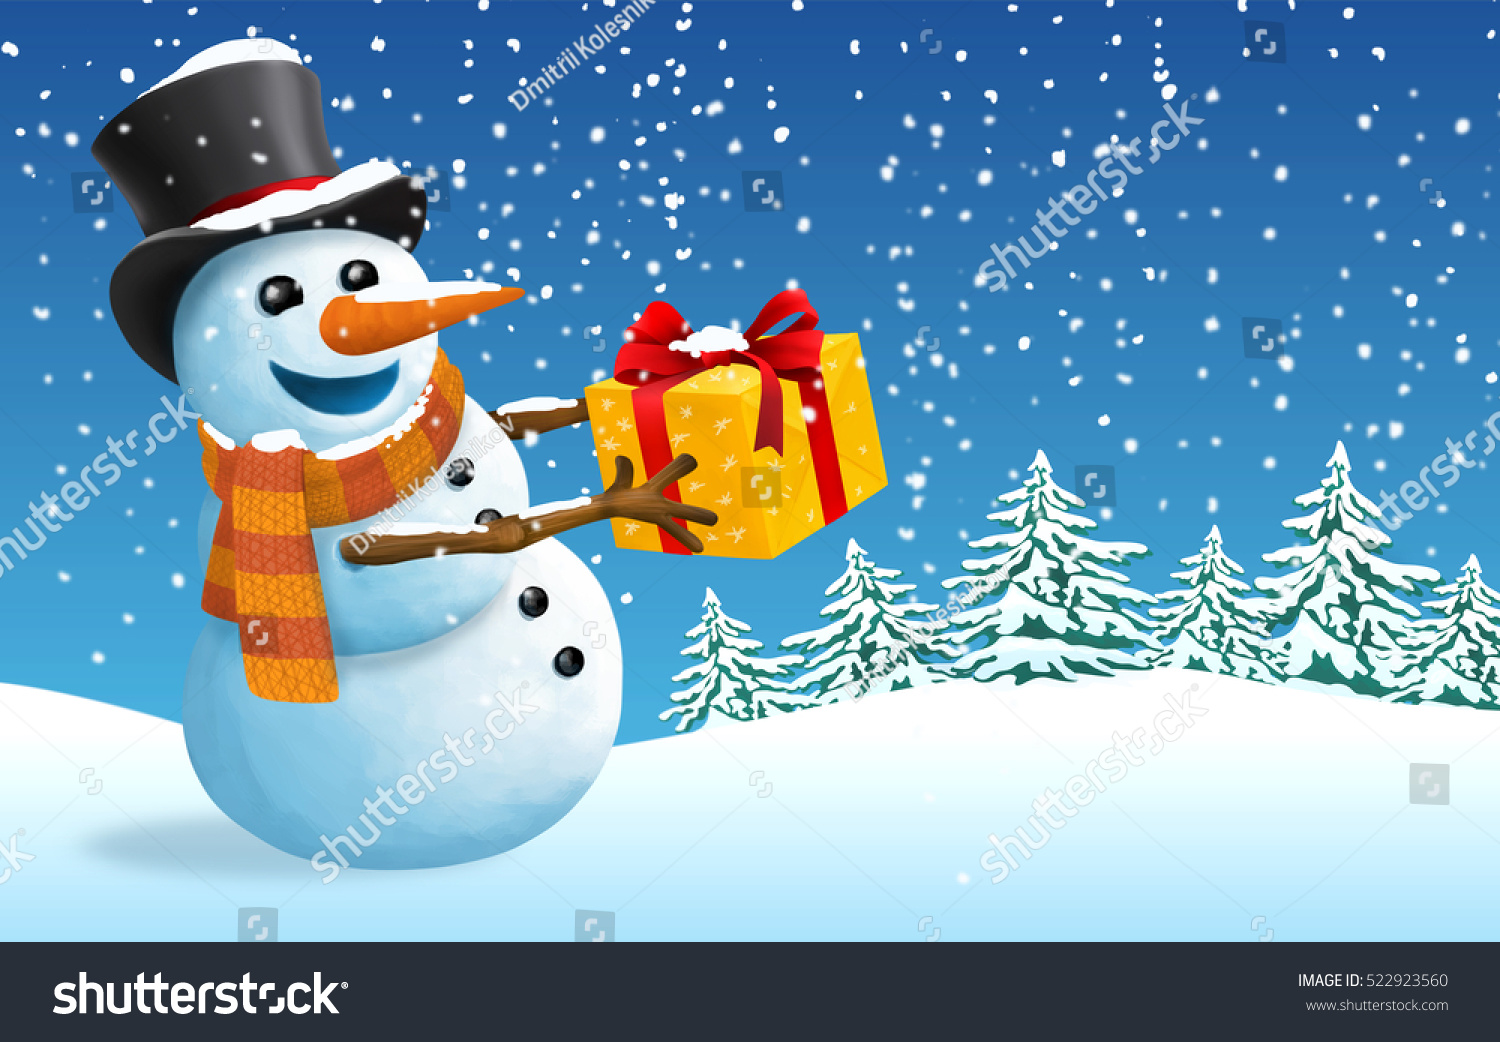 Postcard christmas and new year snowman with gift stock